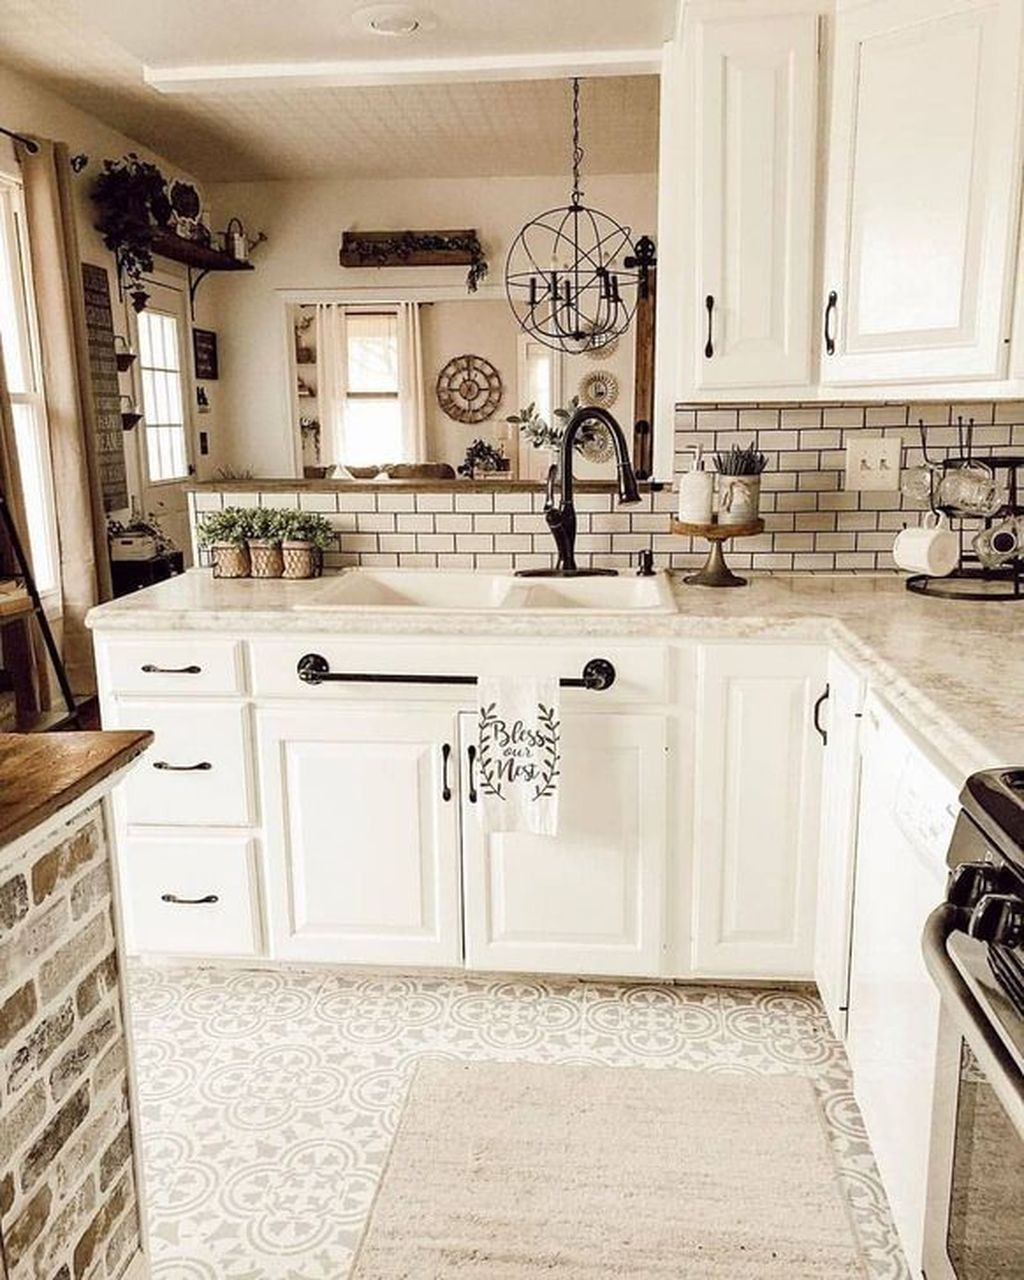 39 Great Ideas For Modern Farmhouse Kitchen Decorations - MAGZHOUSE